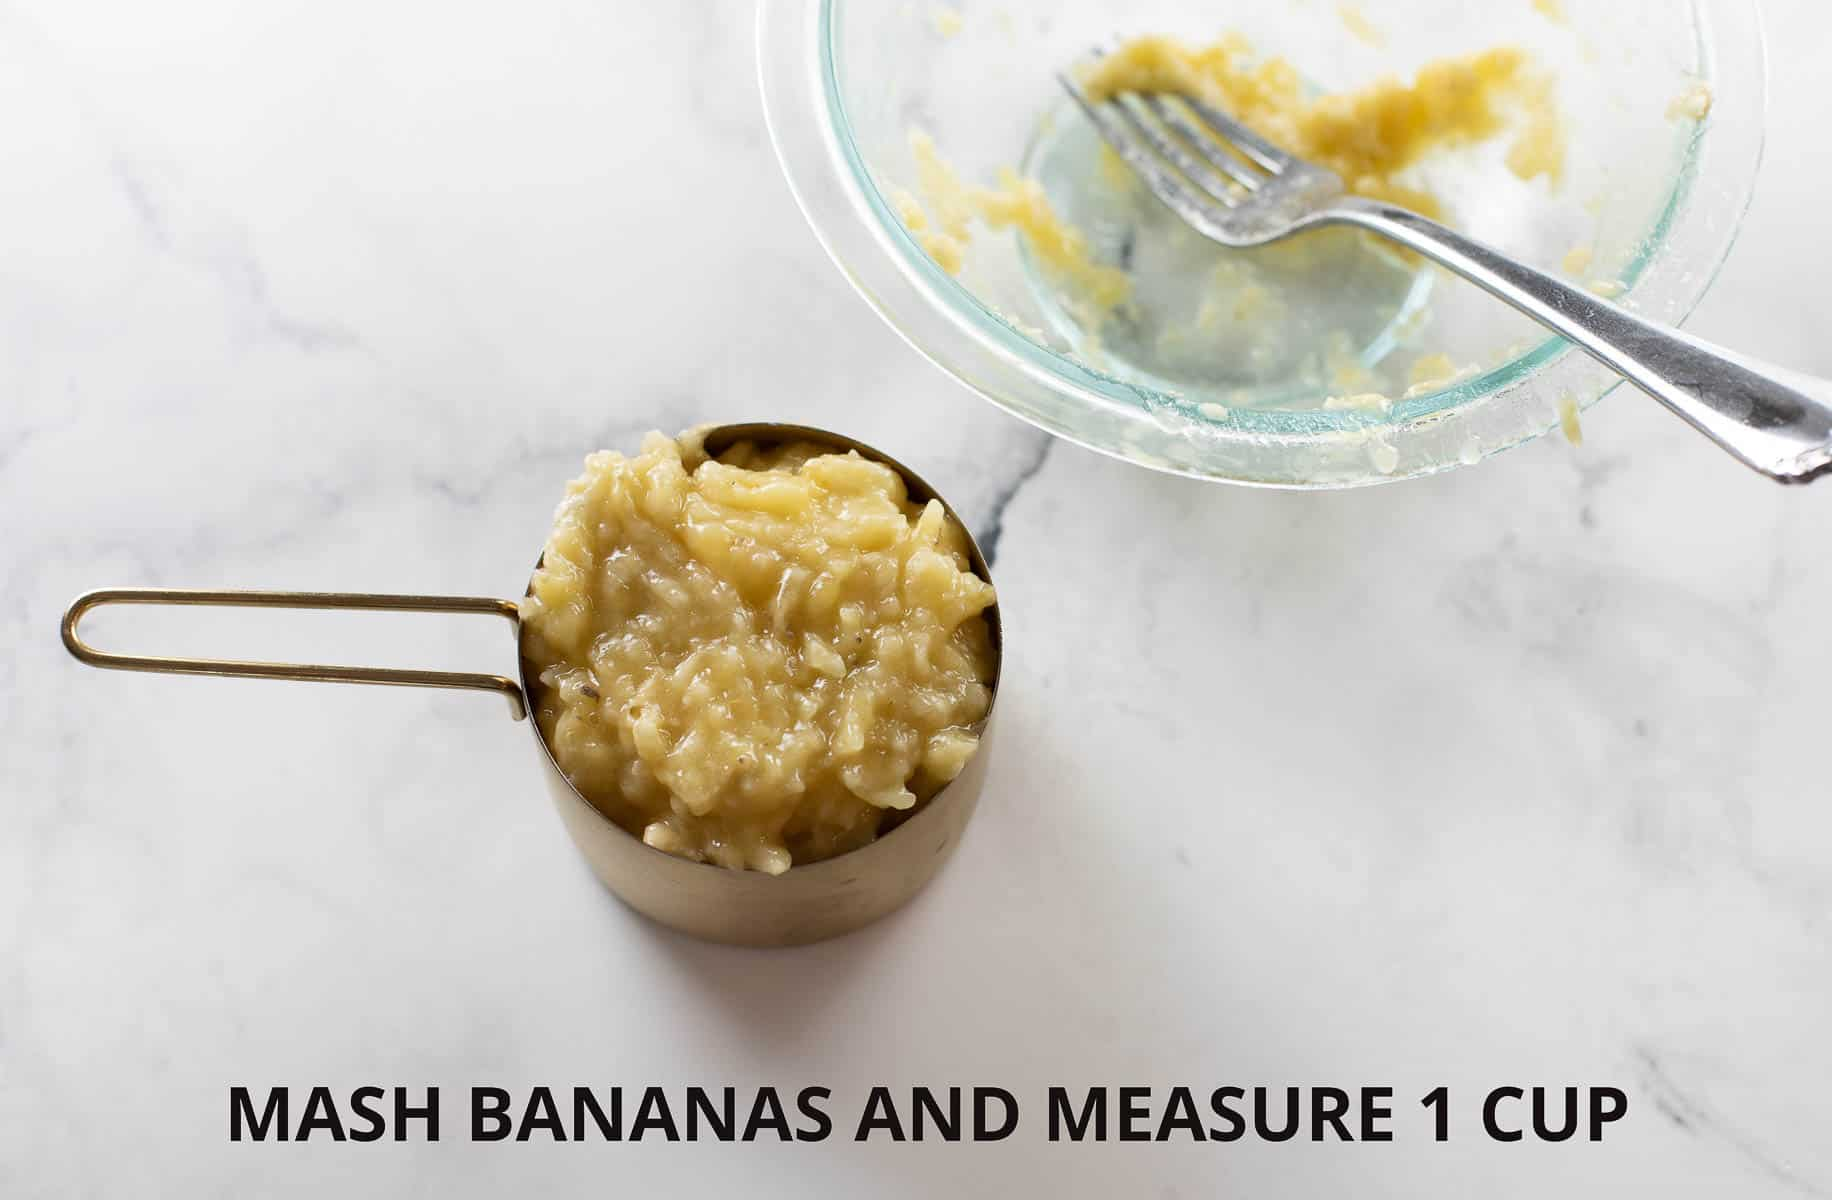 mashed banana in gold measuring cup on marble background